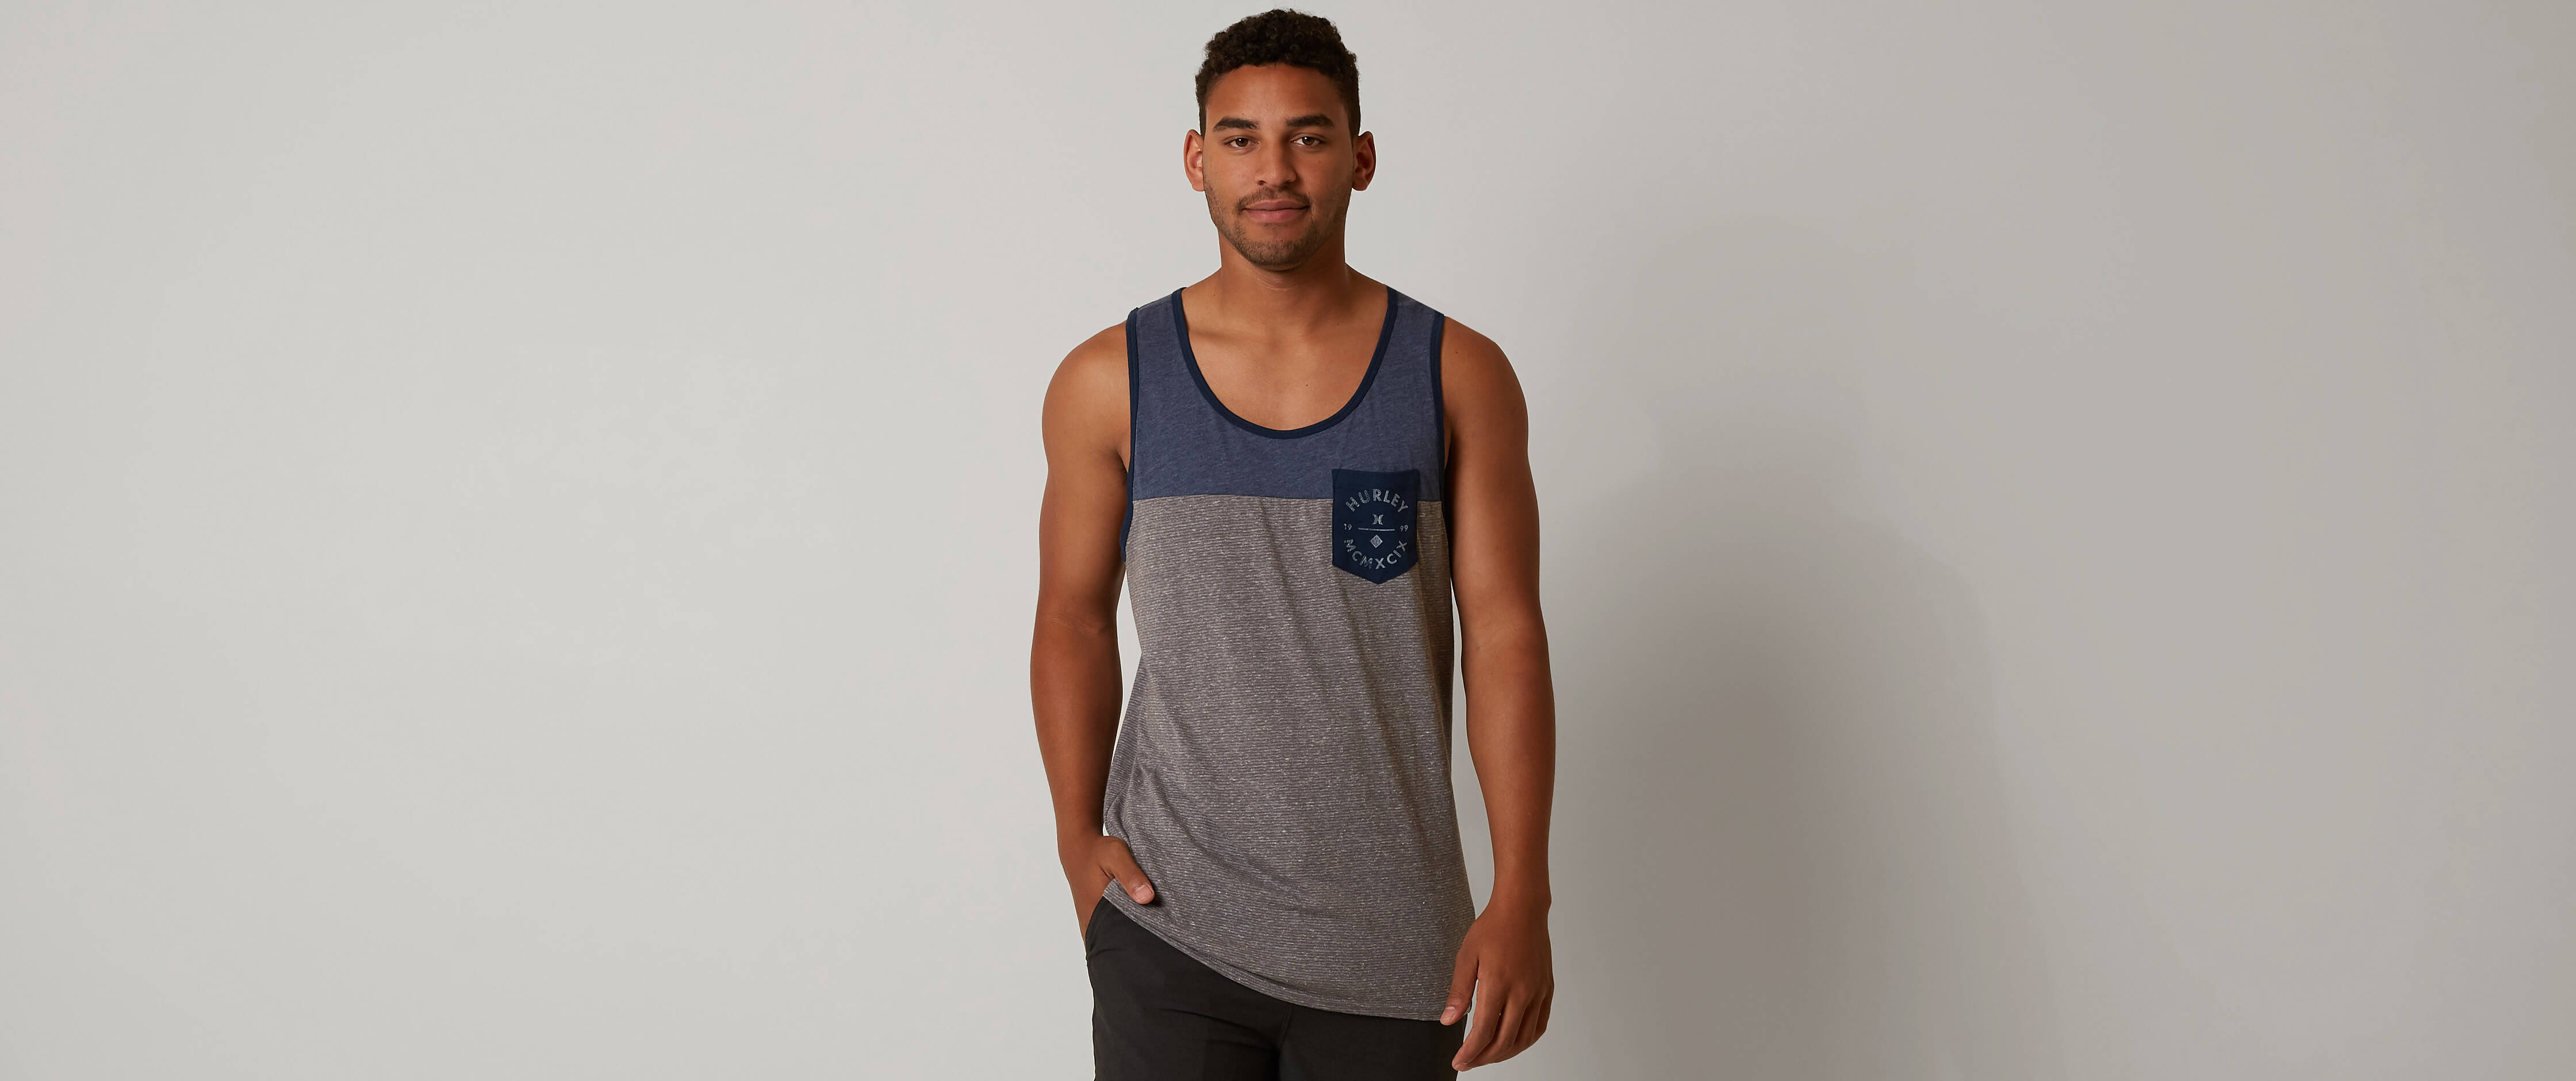 Hurley Grain of Salt Tank Top